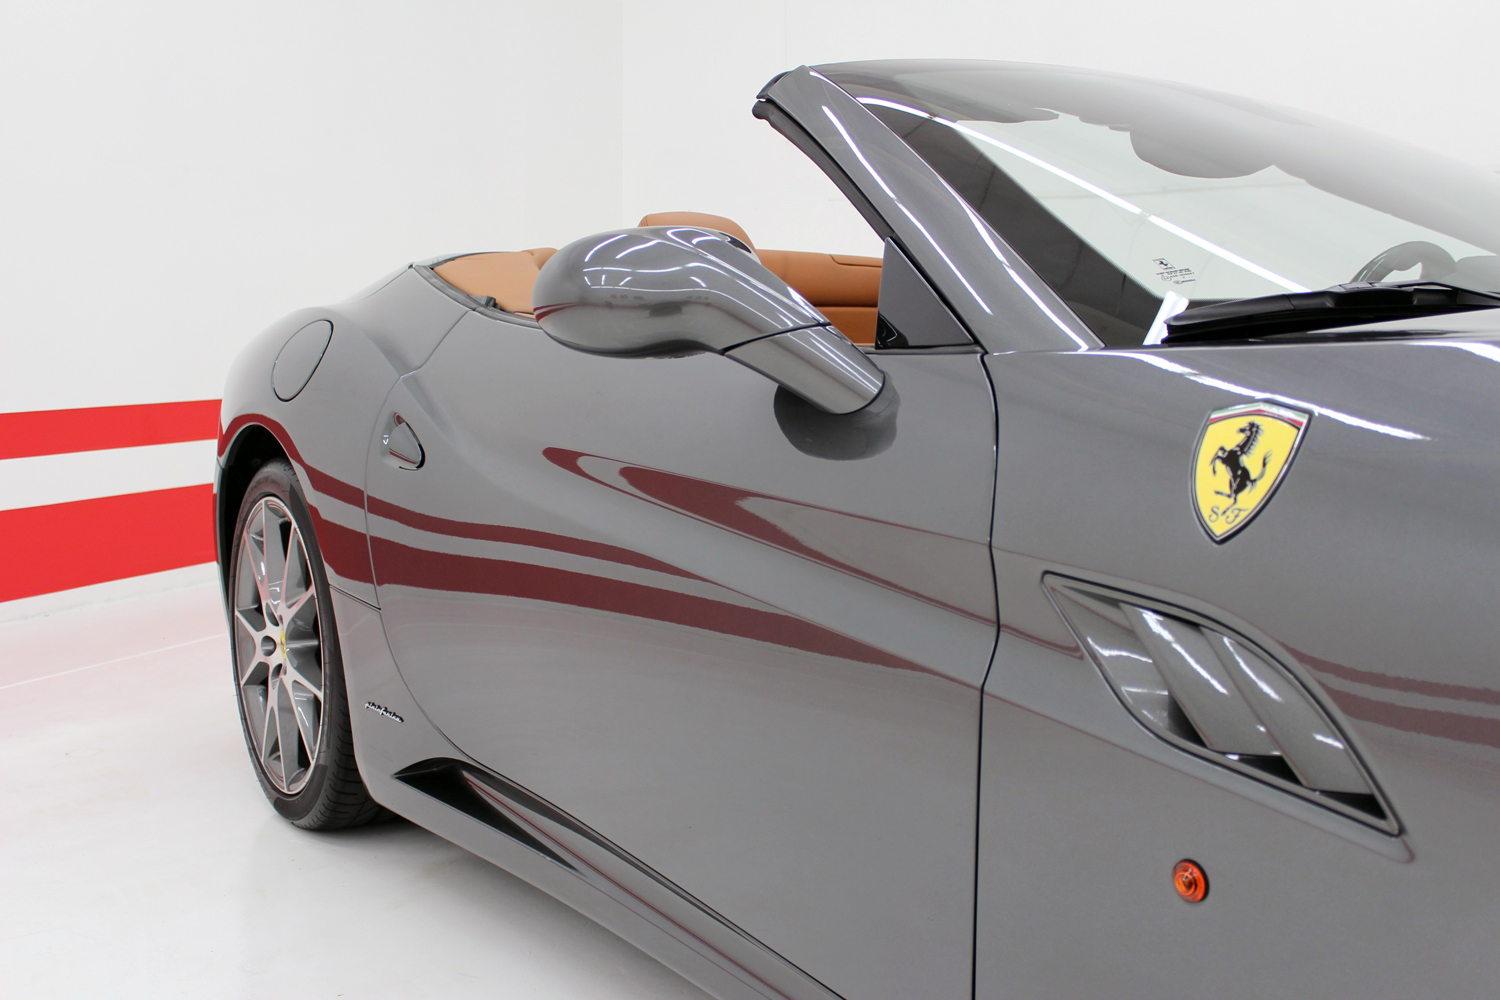 2010 Ferrari California - ($210K MSRP)